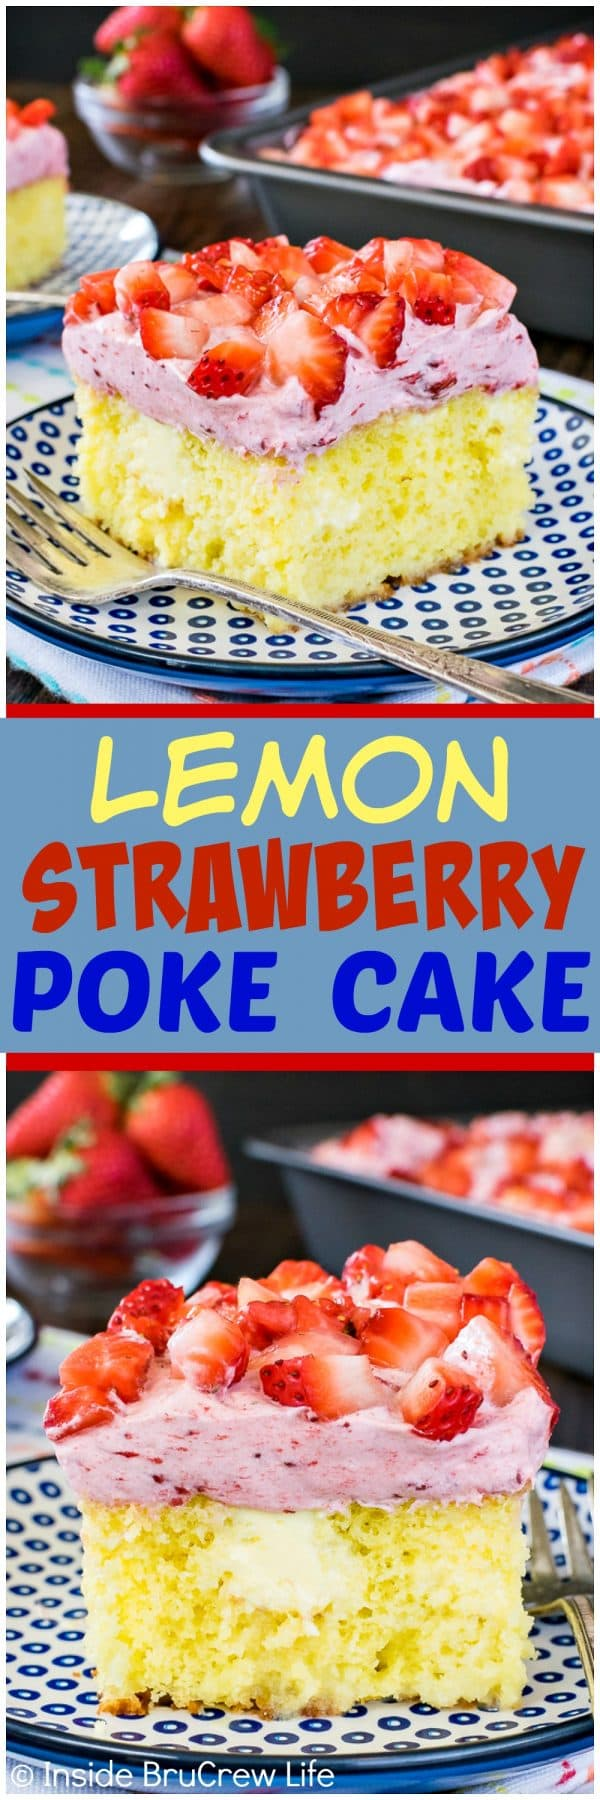 Two pictures of lemon strawberry poke cake collaged together with a blue text box